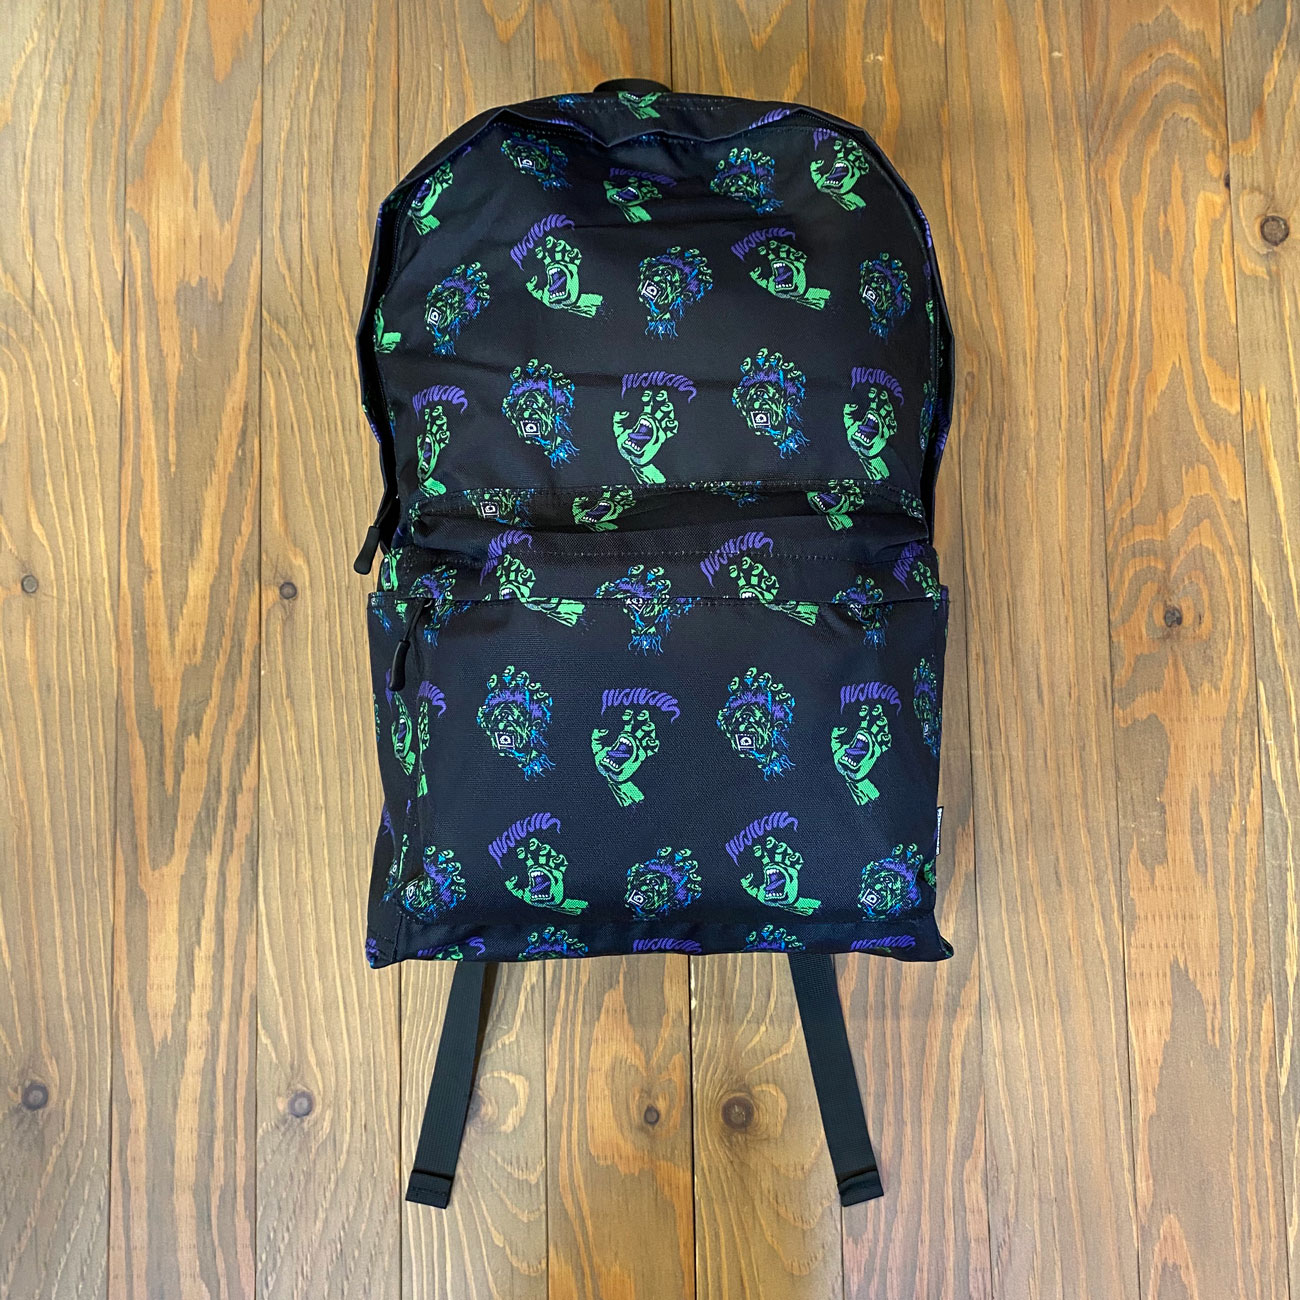 MxMxM x SANTA CRUZ MAGICAL SCREAMING HAND BACKPACK